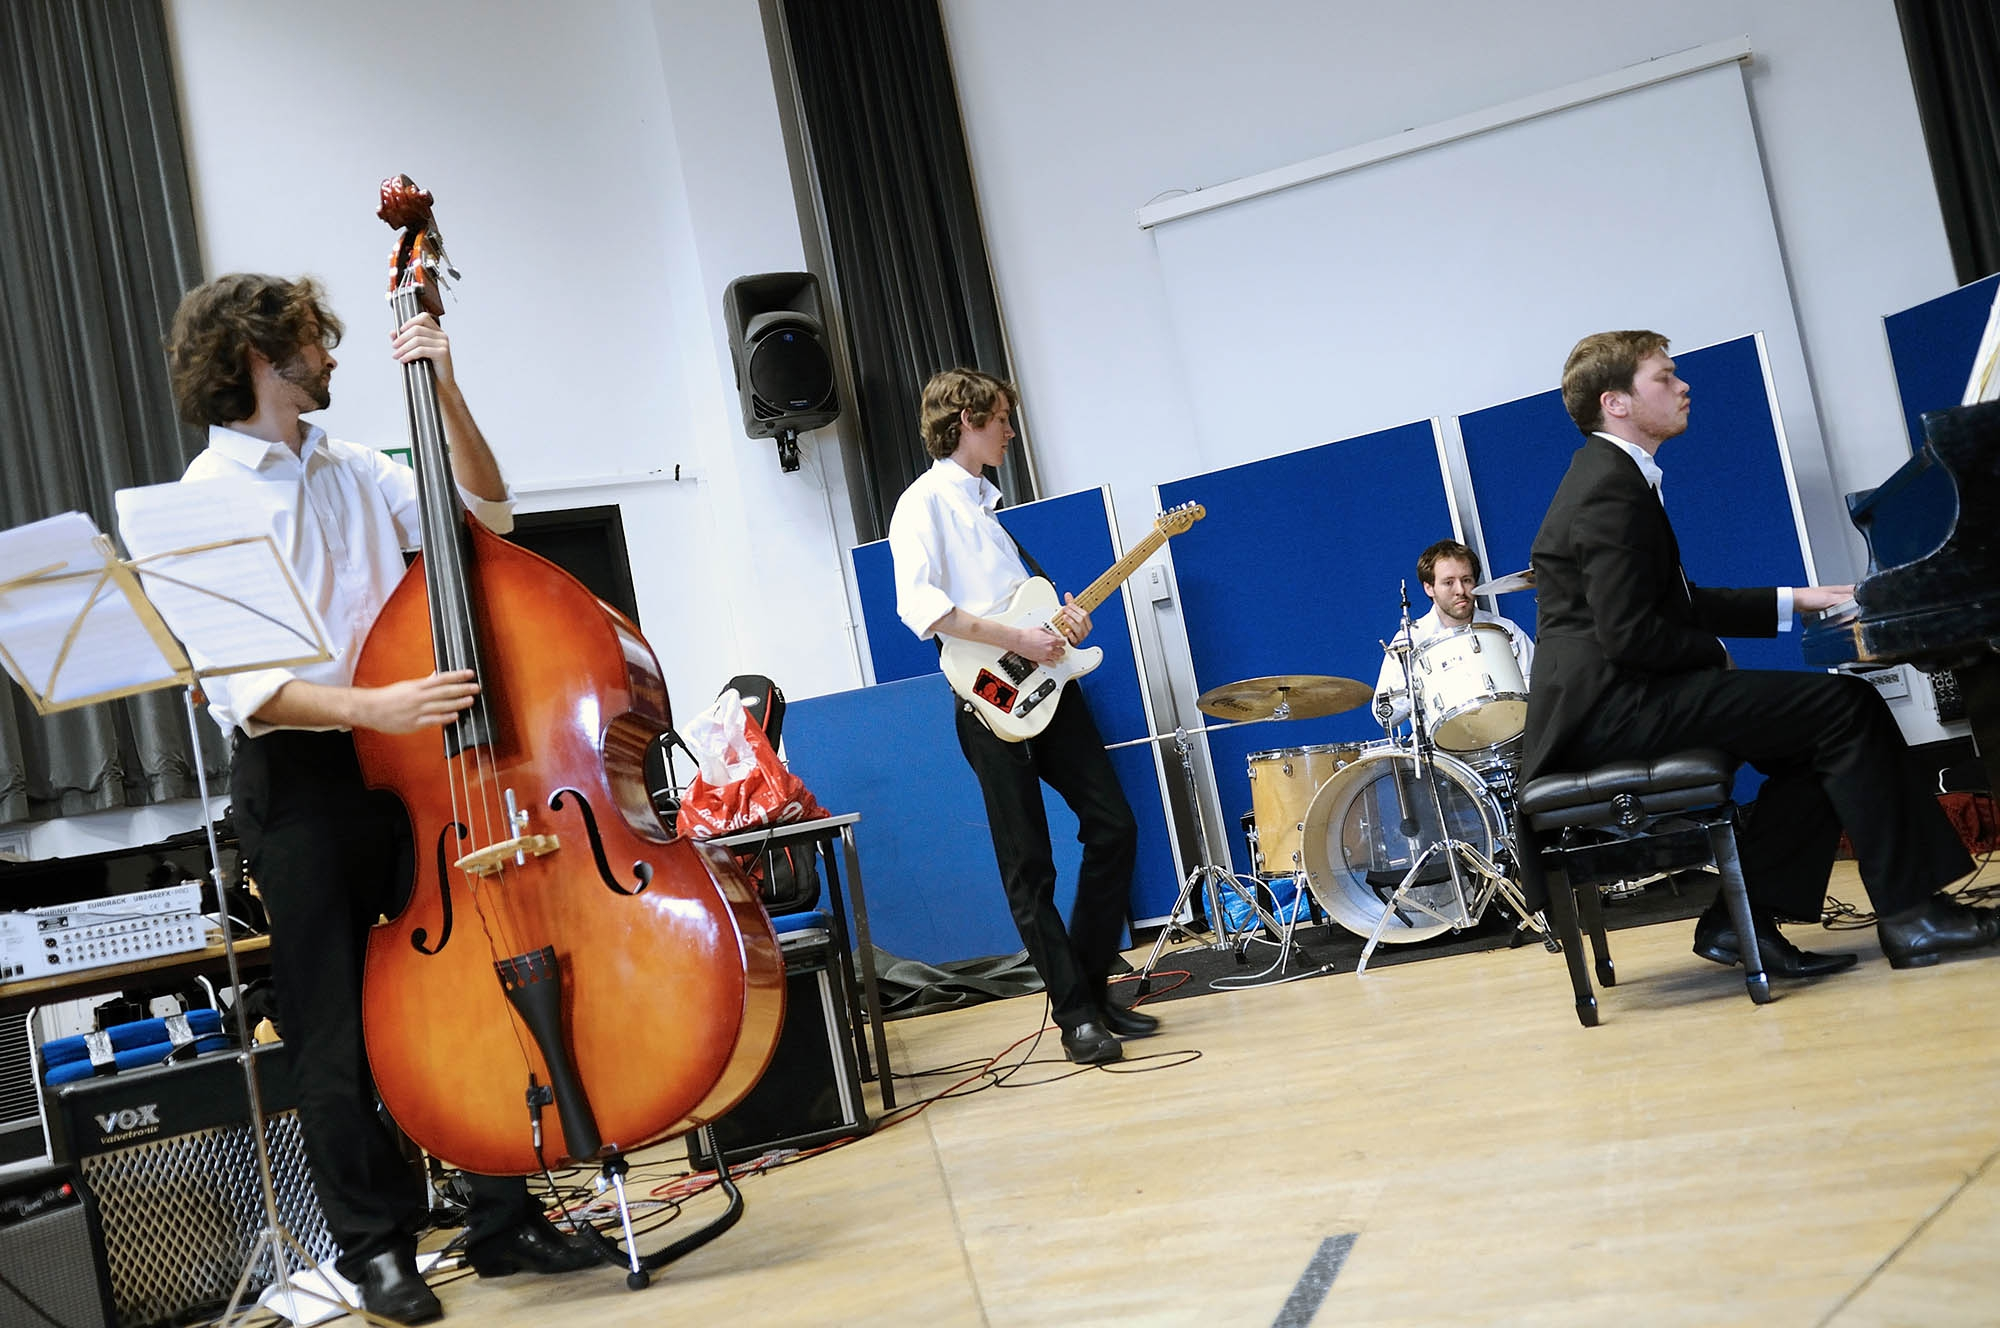 Music students rehearsing in one of the studios at Coombehurst House